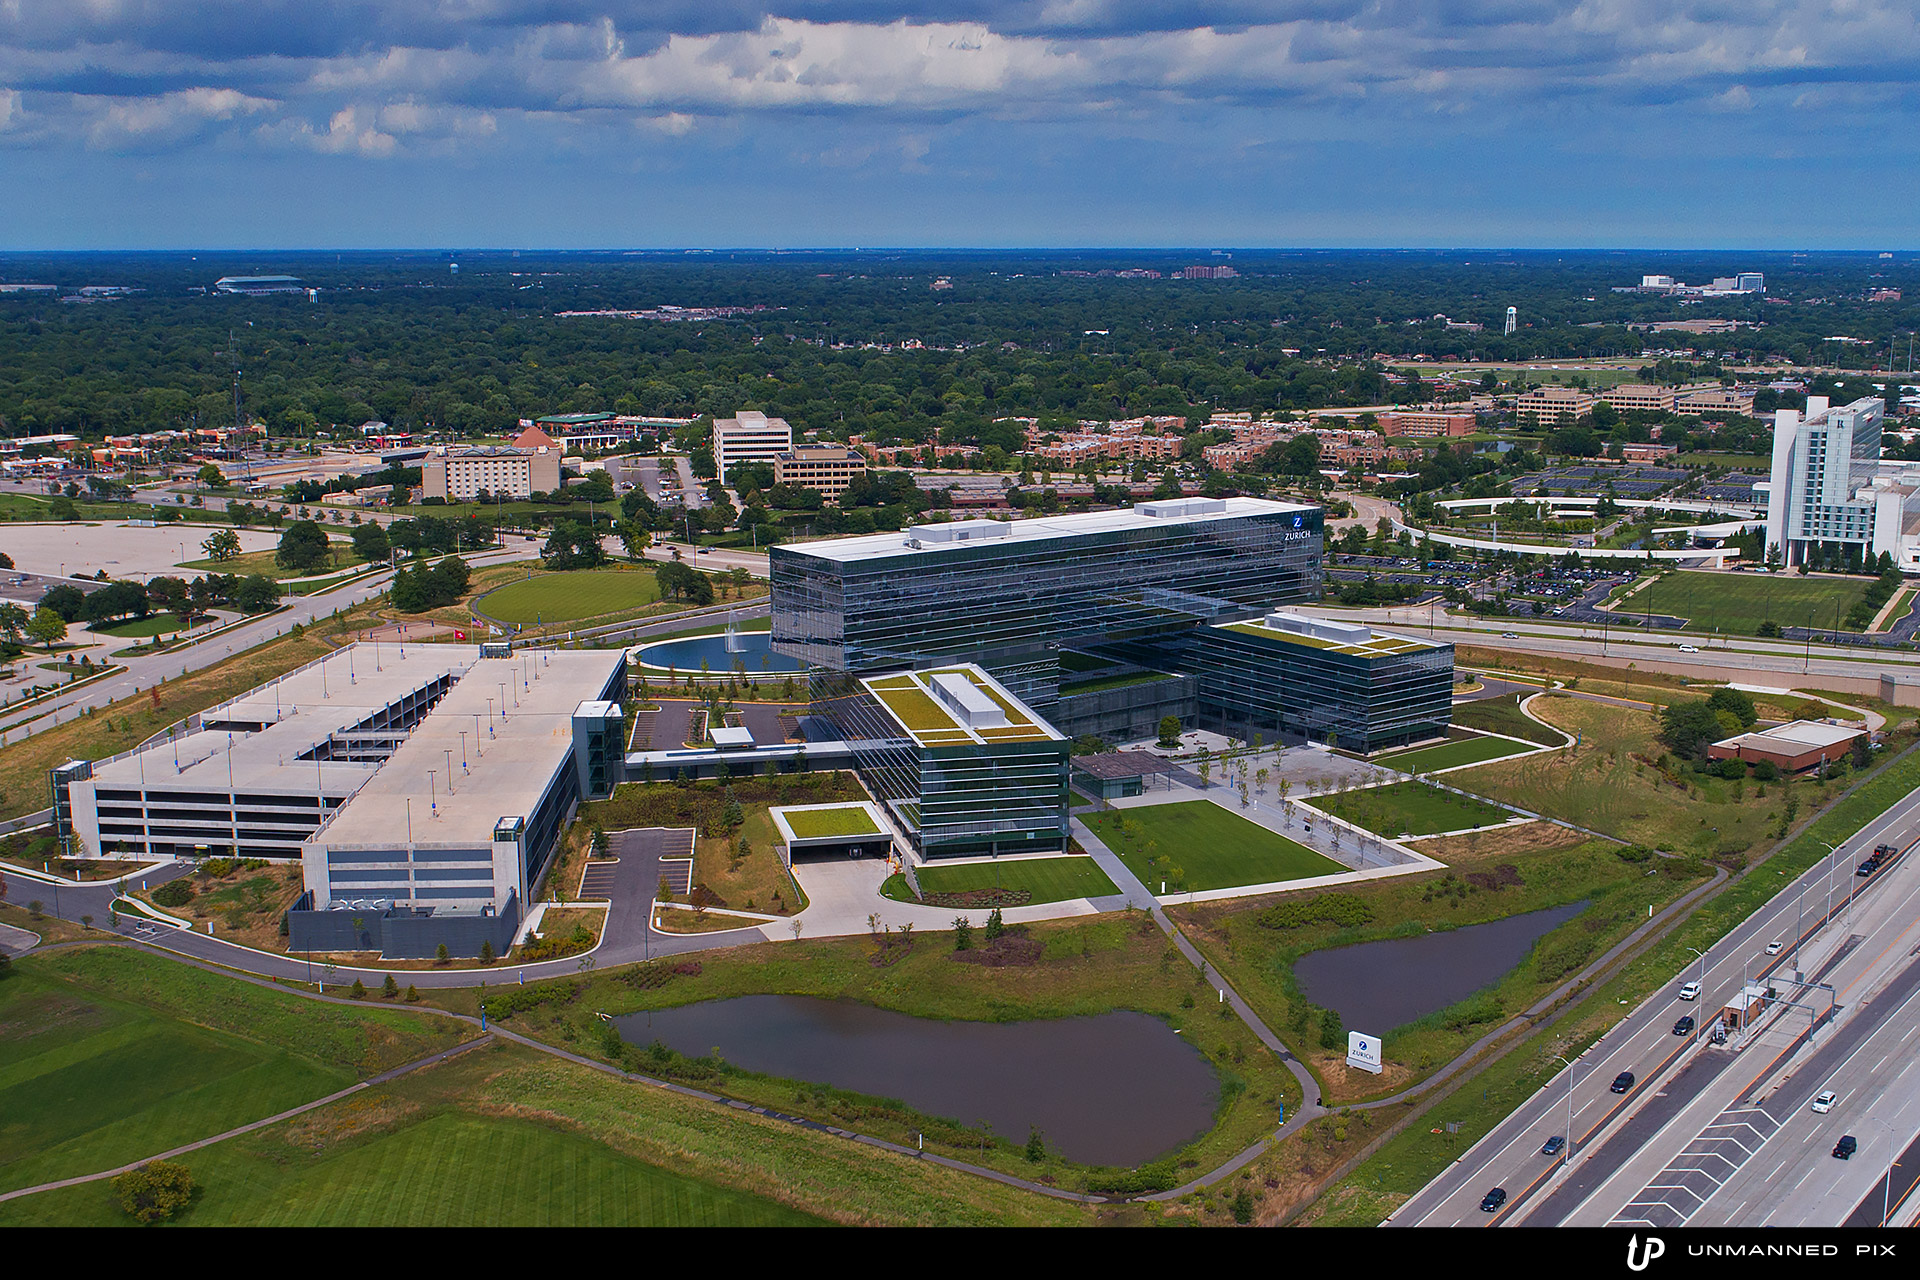 aerial view of the zurich north america headquarters, facing north east, photographed by jacob rosenfeld for unmannedpix.com